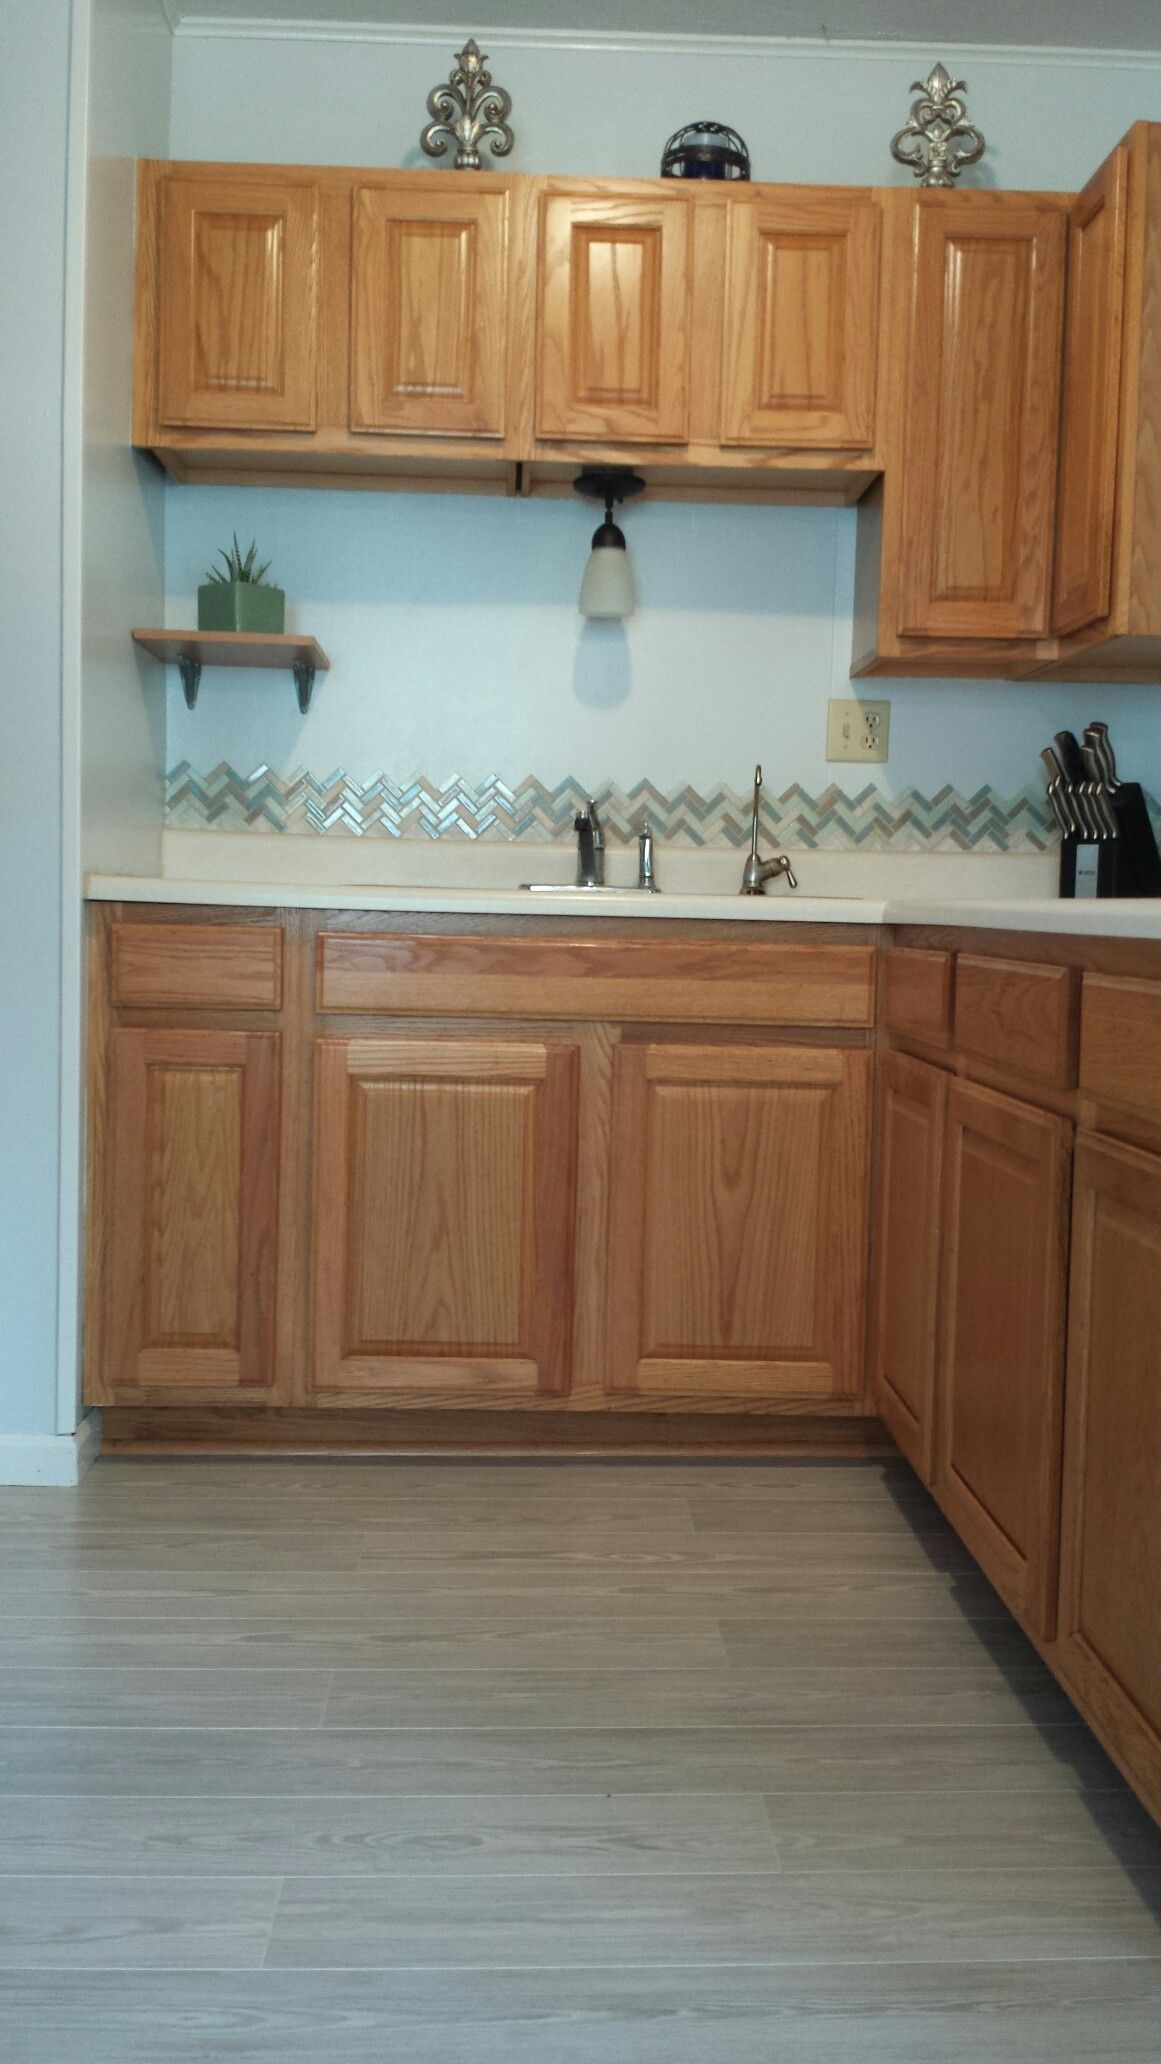 Kitchen Backsplash For Oak Cabinets honey oak kitchen cabinets with gray pergo willow lake pine floors